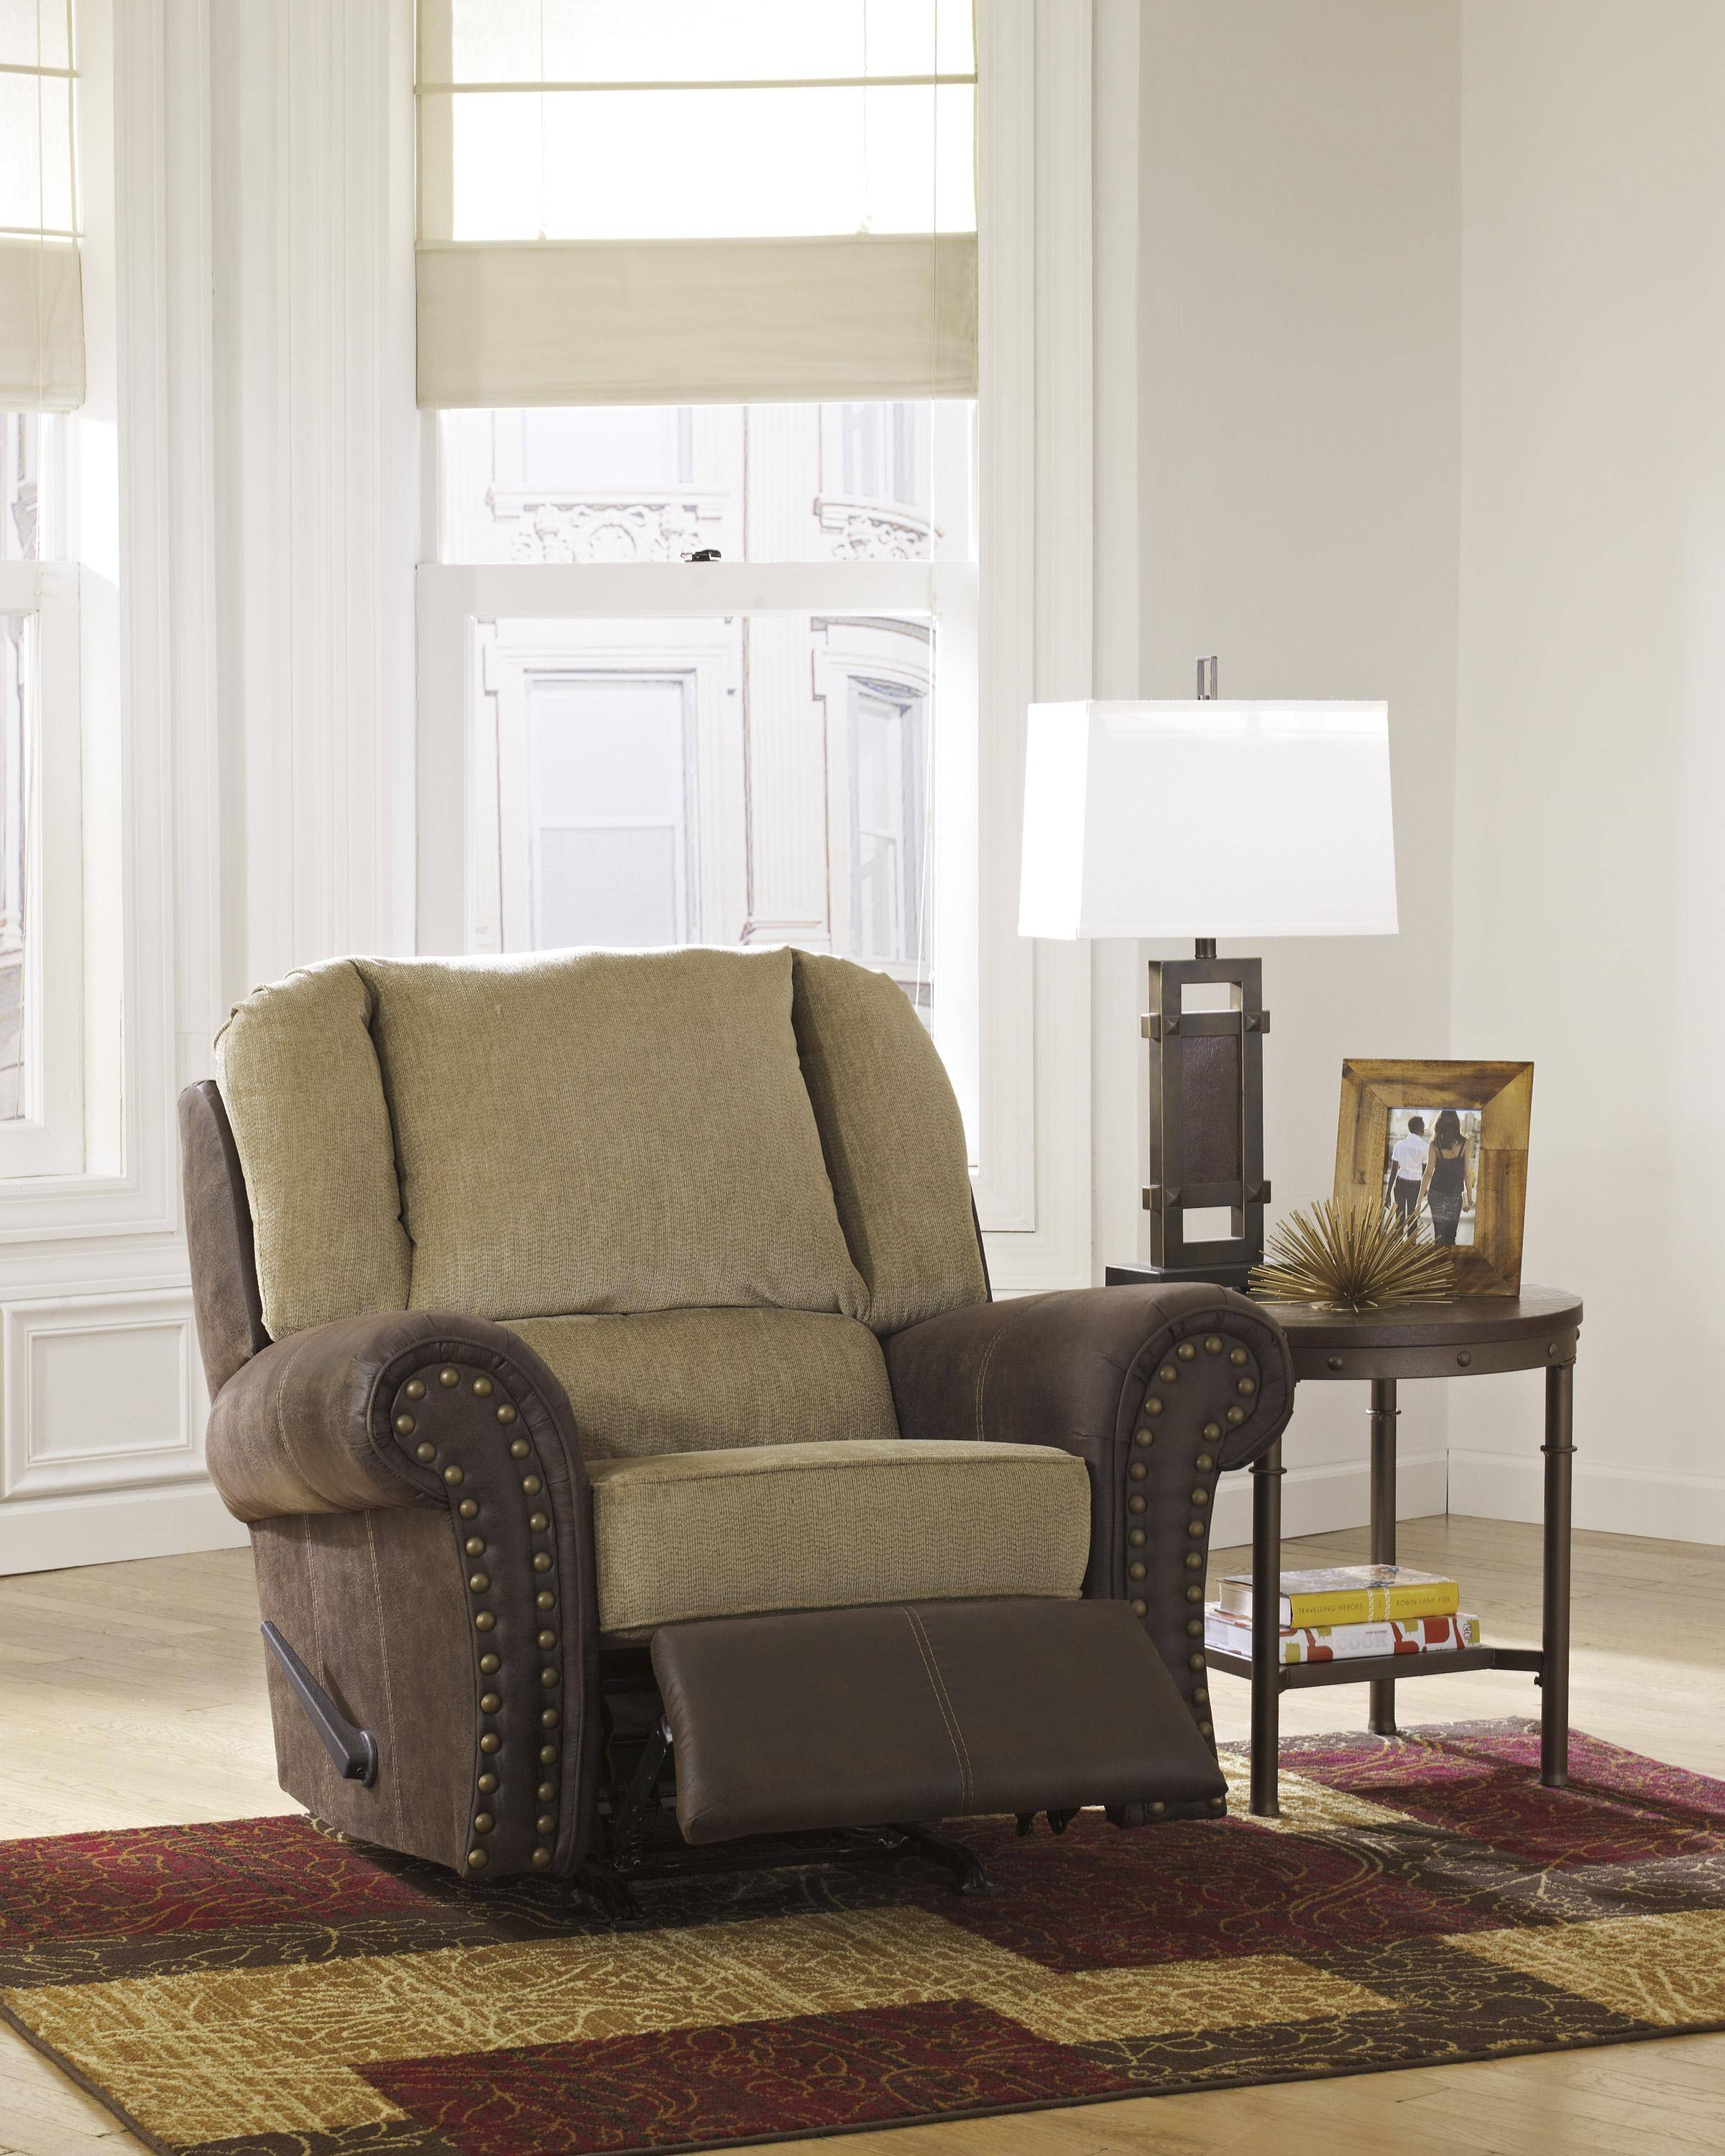 Drawing Room Furniture: Ashley Vandive 3 Piece Living Room Set In Sand (44300-38